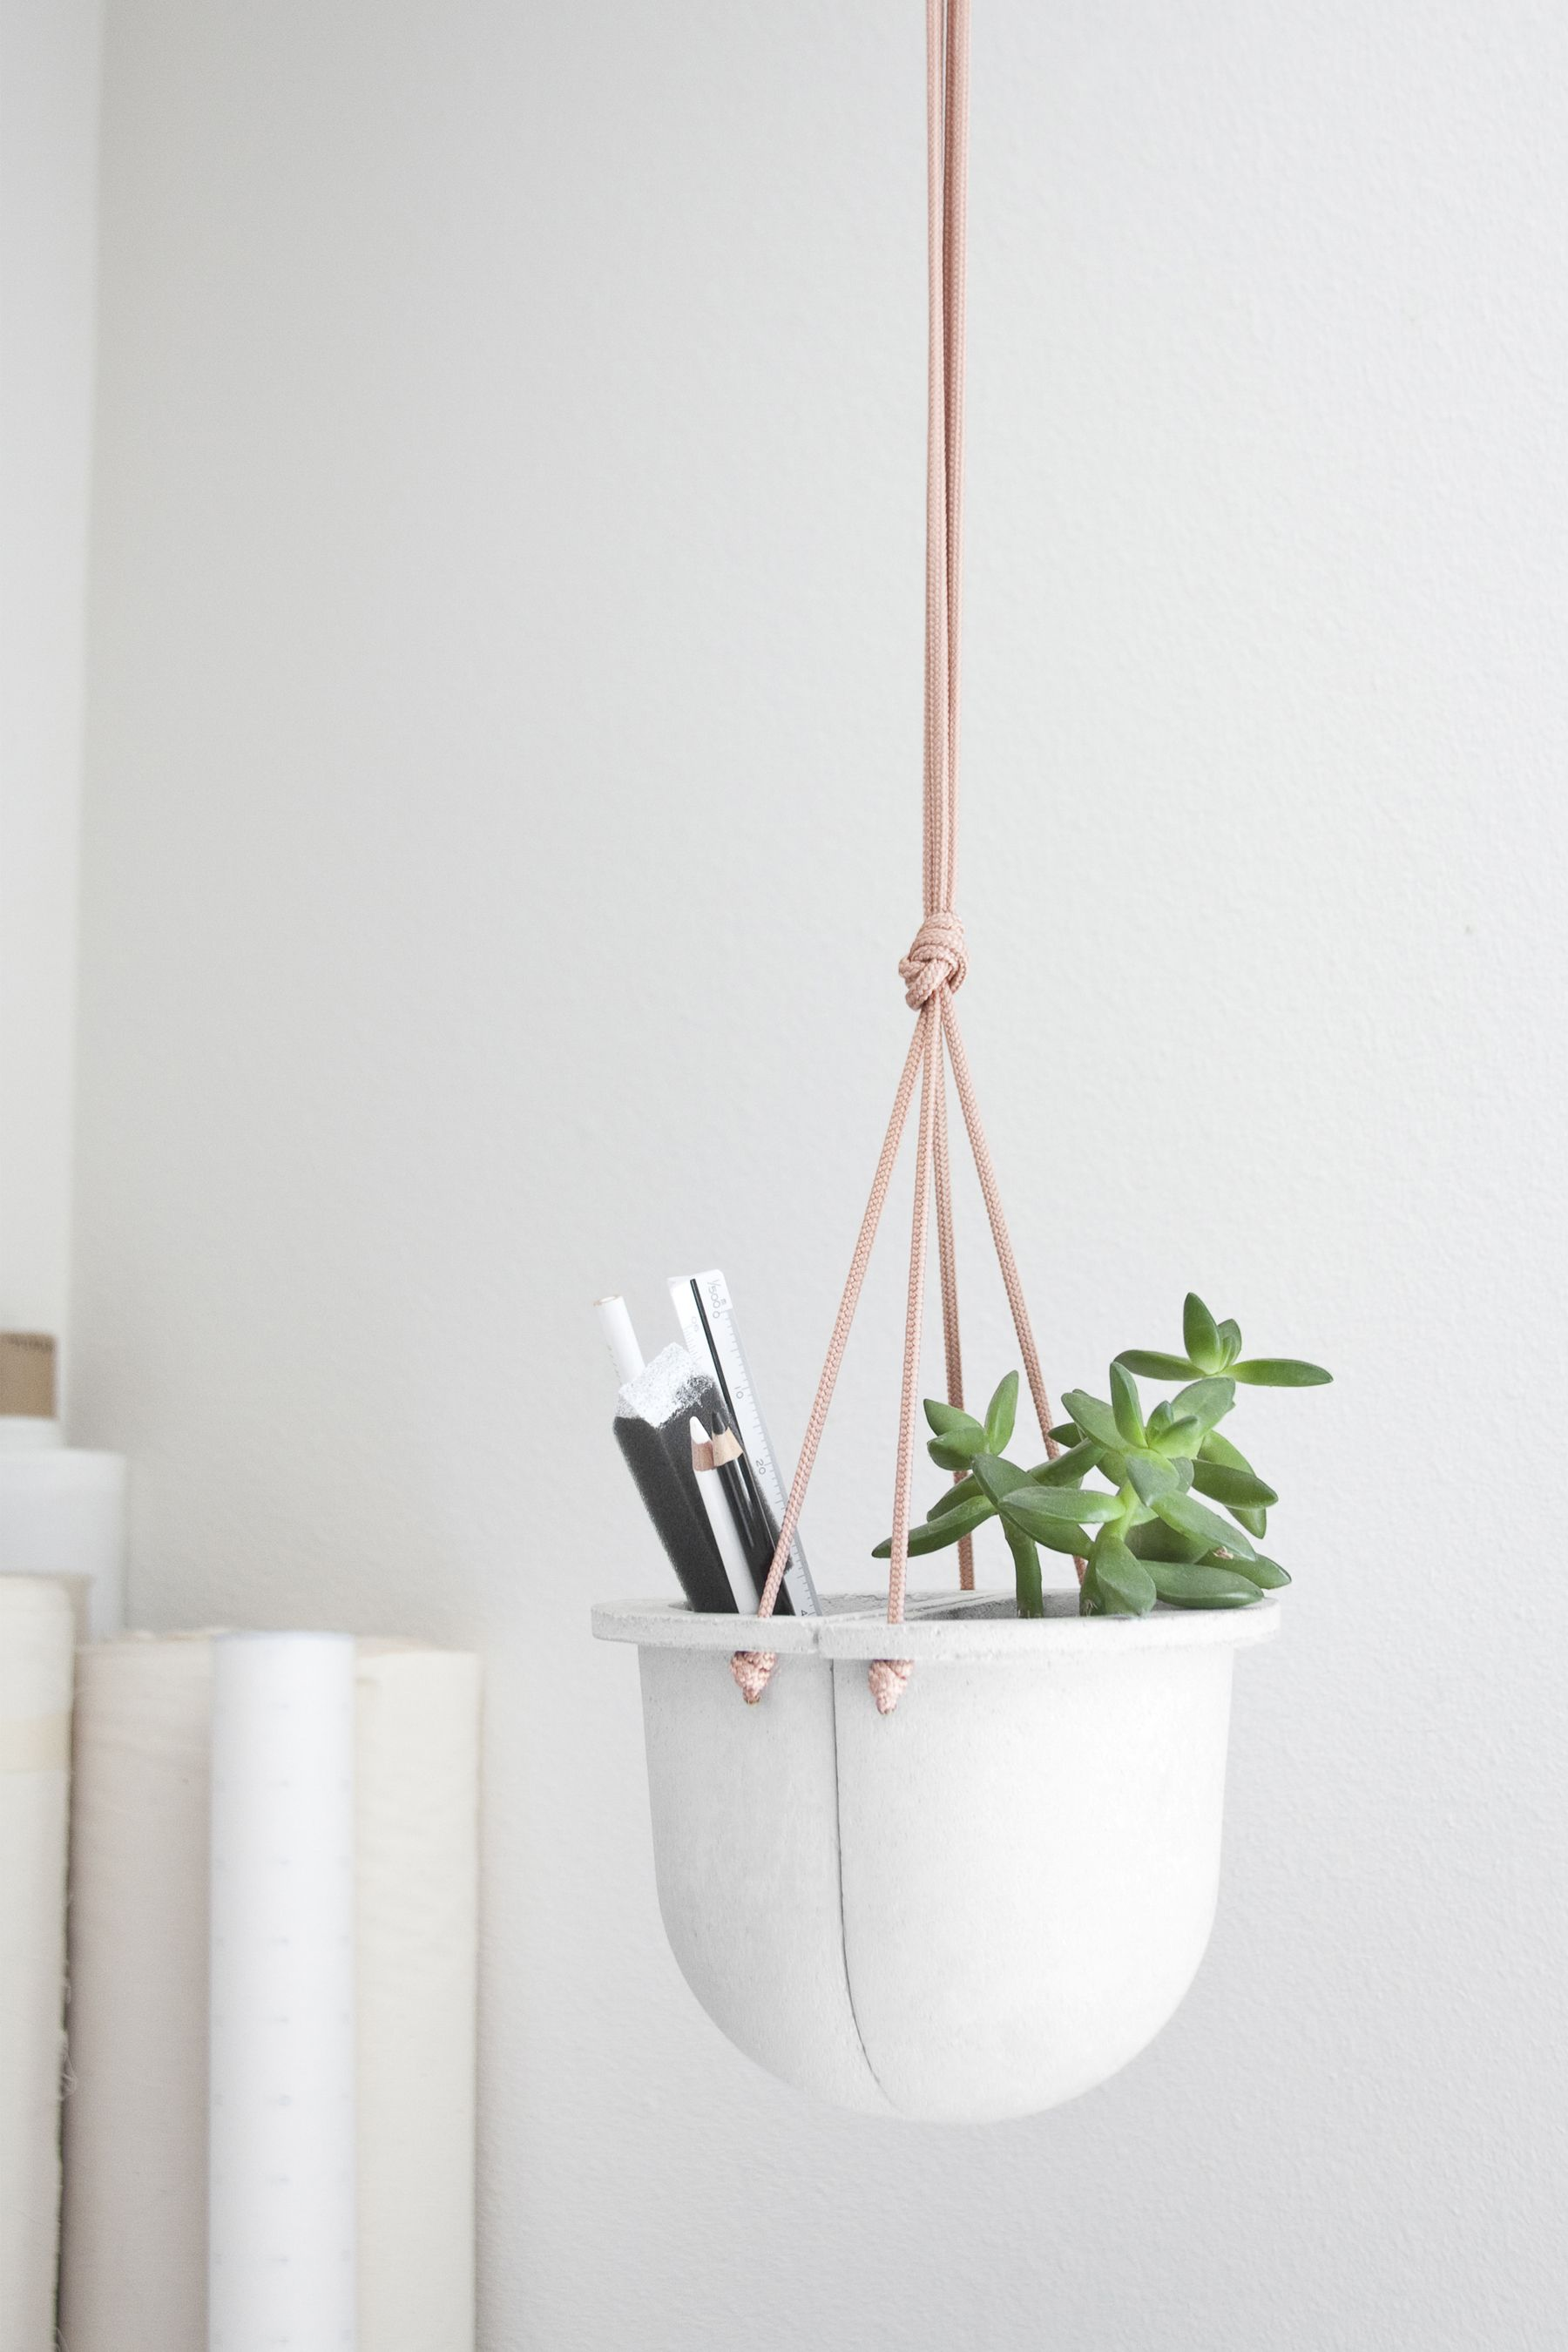 """wrk-shp½ vase $58 Pair vase $104 Wood extension not shown on website 9"""" $24 18""""$28  Wall hook for ½ vase $36"""" If for commercial use will work with you on pricing."""